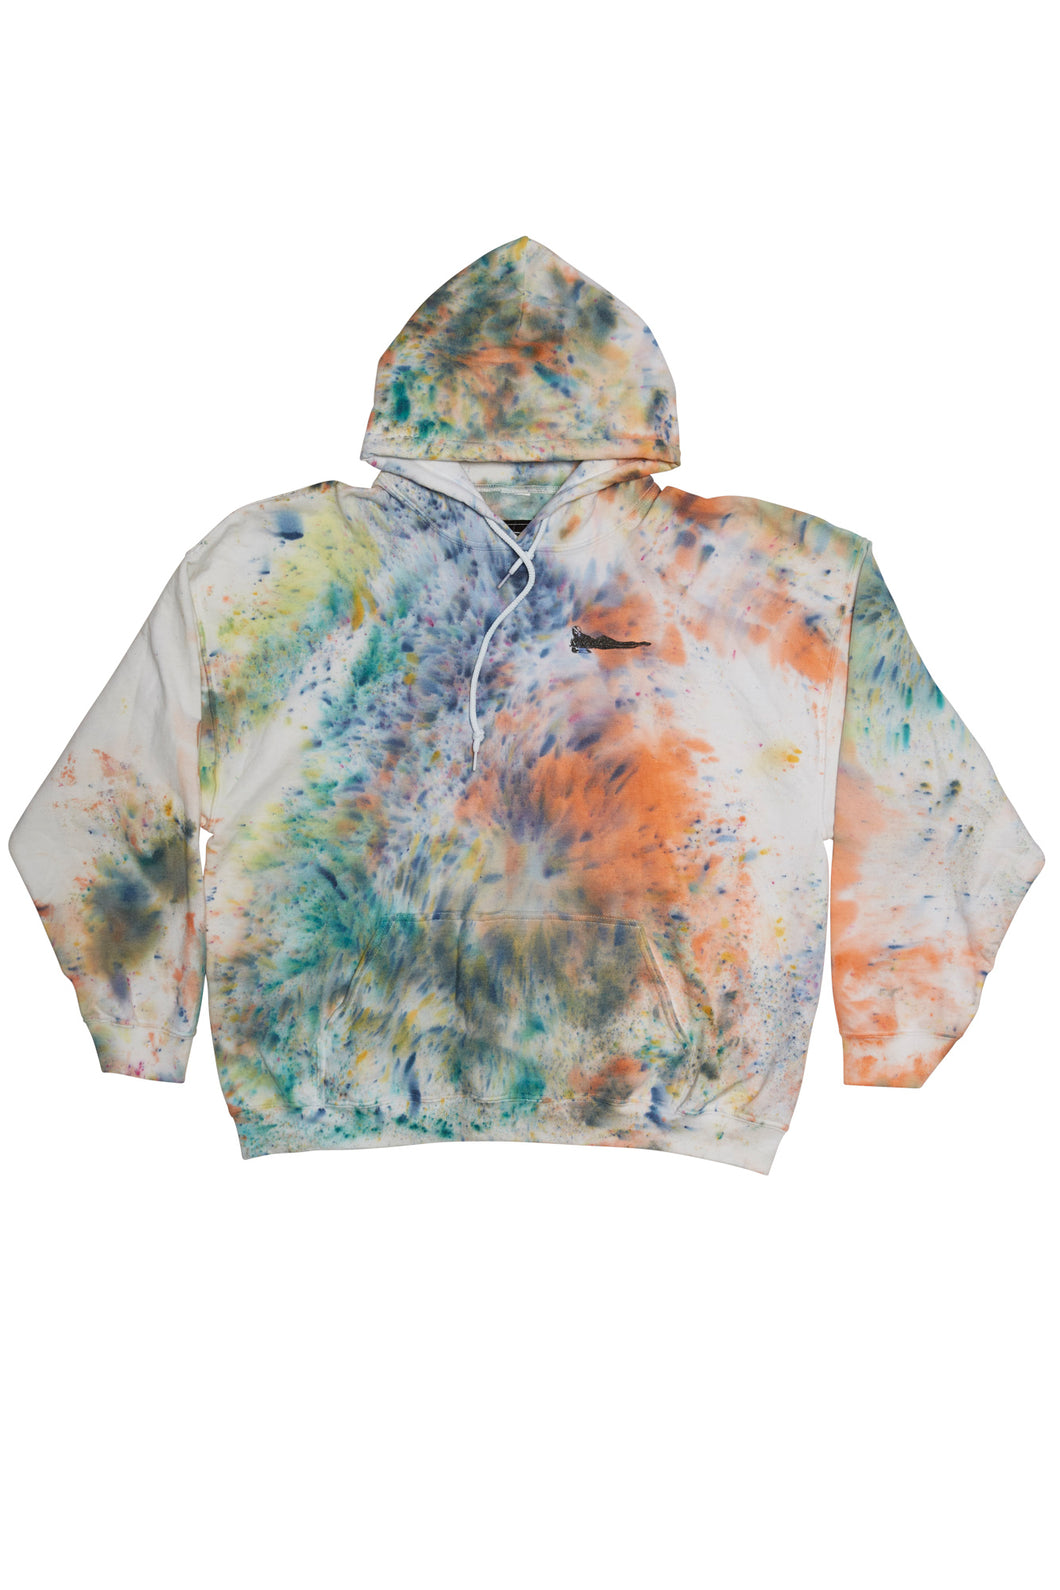 Hand Dyed Hooded Sweater Extra Extra Large